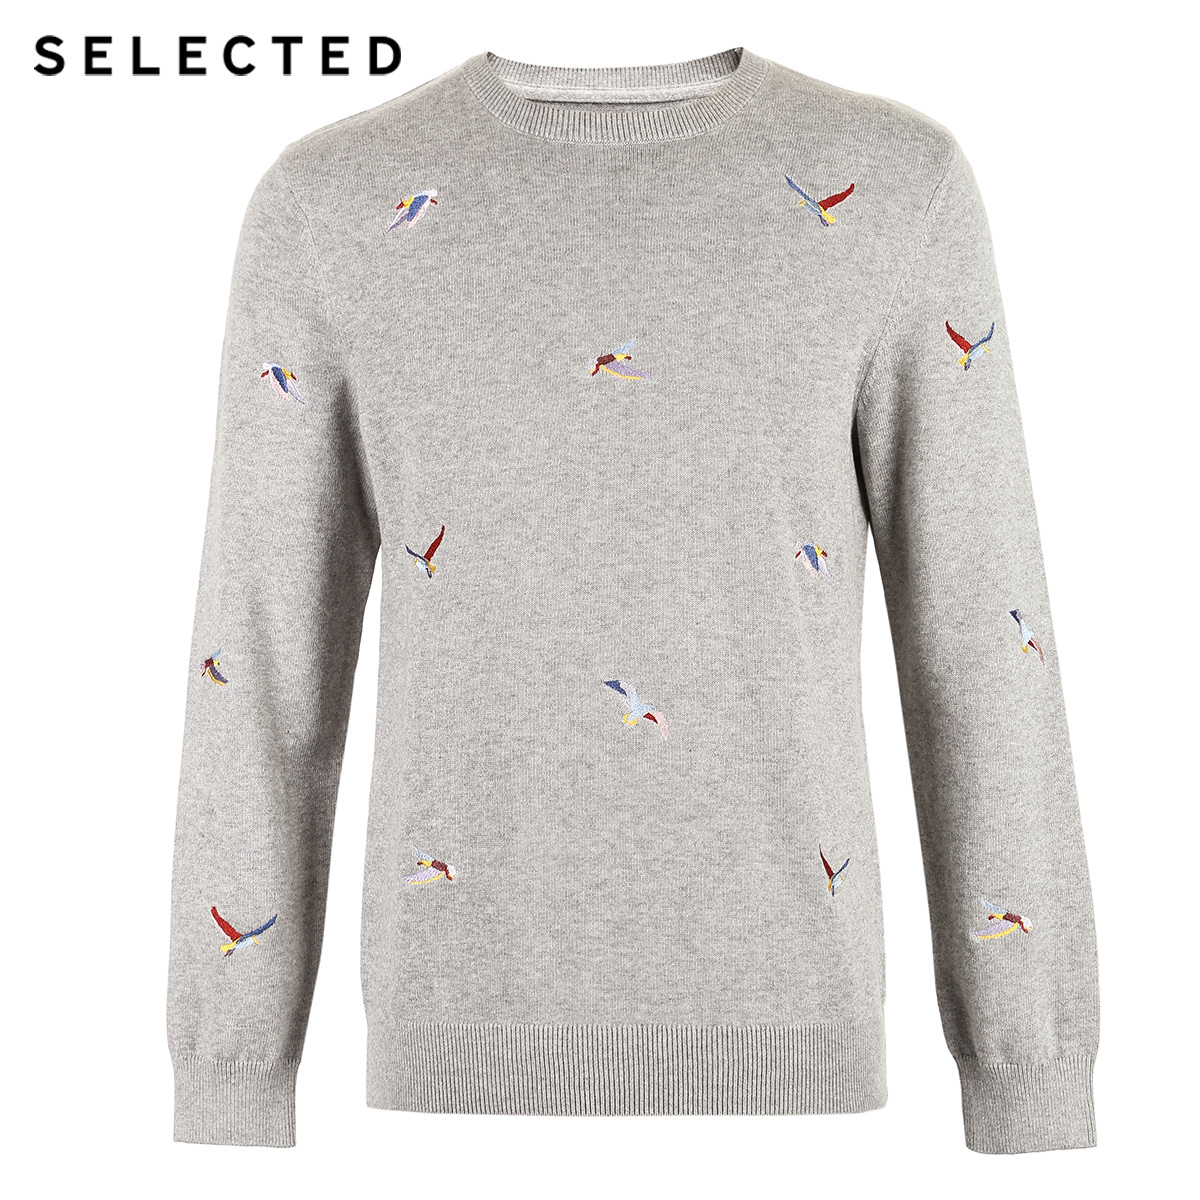 Image 5 - SELECTED Mens 100% Cotton Animal Embroidery Pullovers Sweater New Casual Knit Clothes C  419124539Pullovers